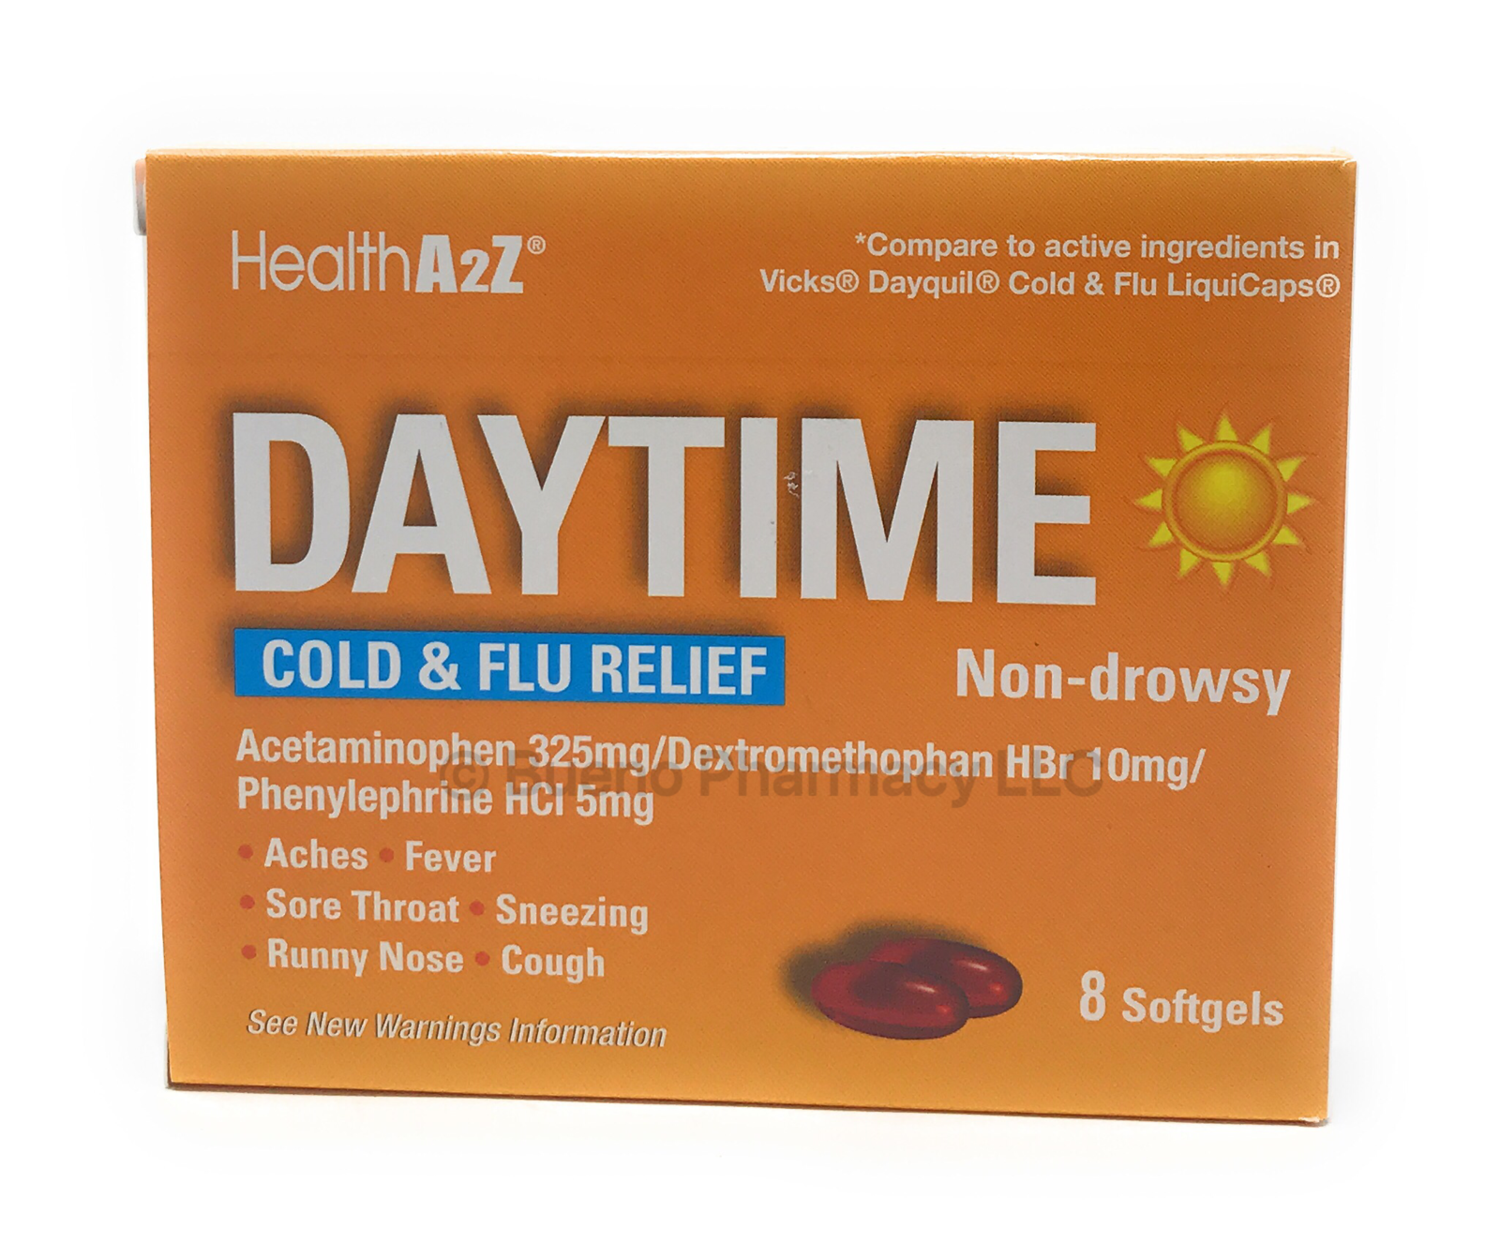 Daytime Cold & Flu Softgels A&Z (8 Softgels)